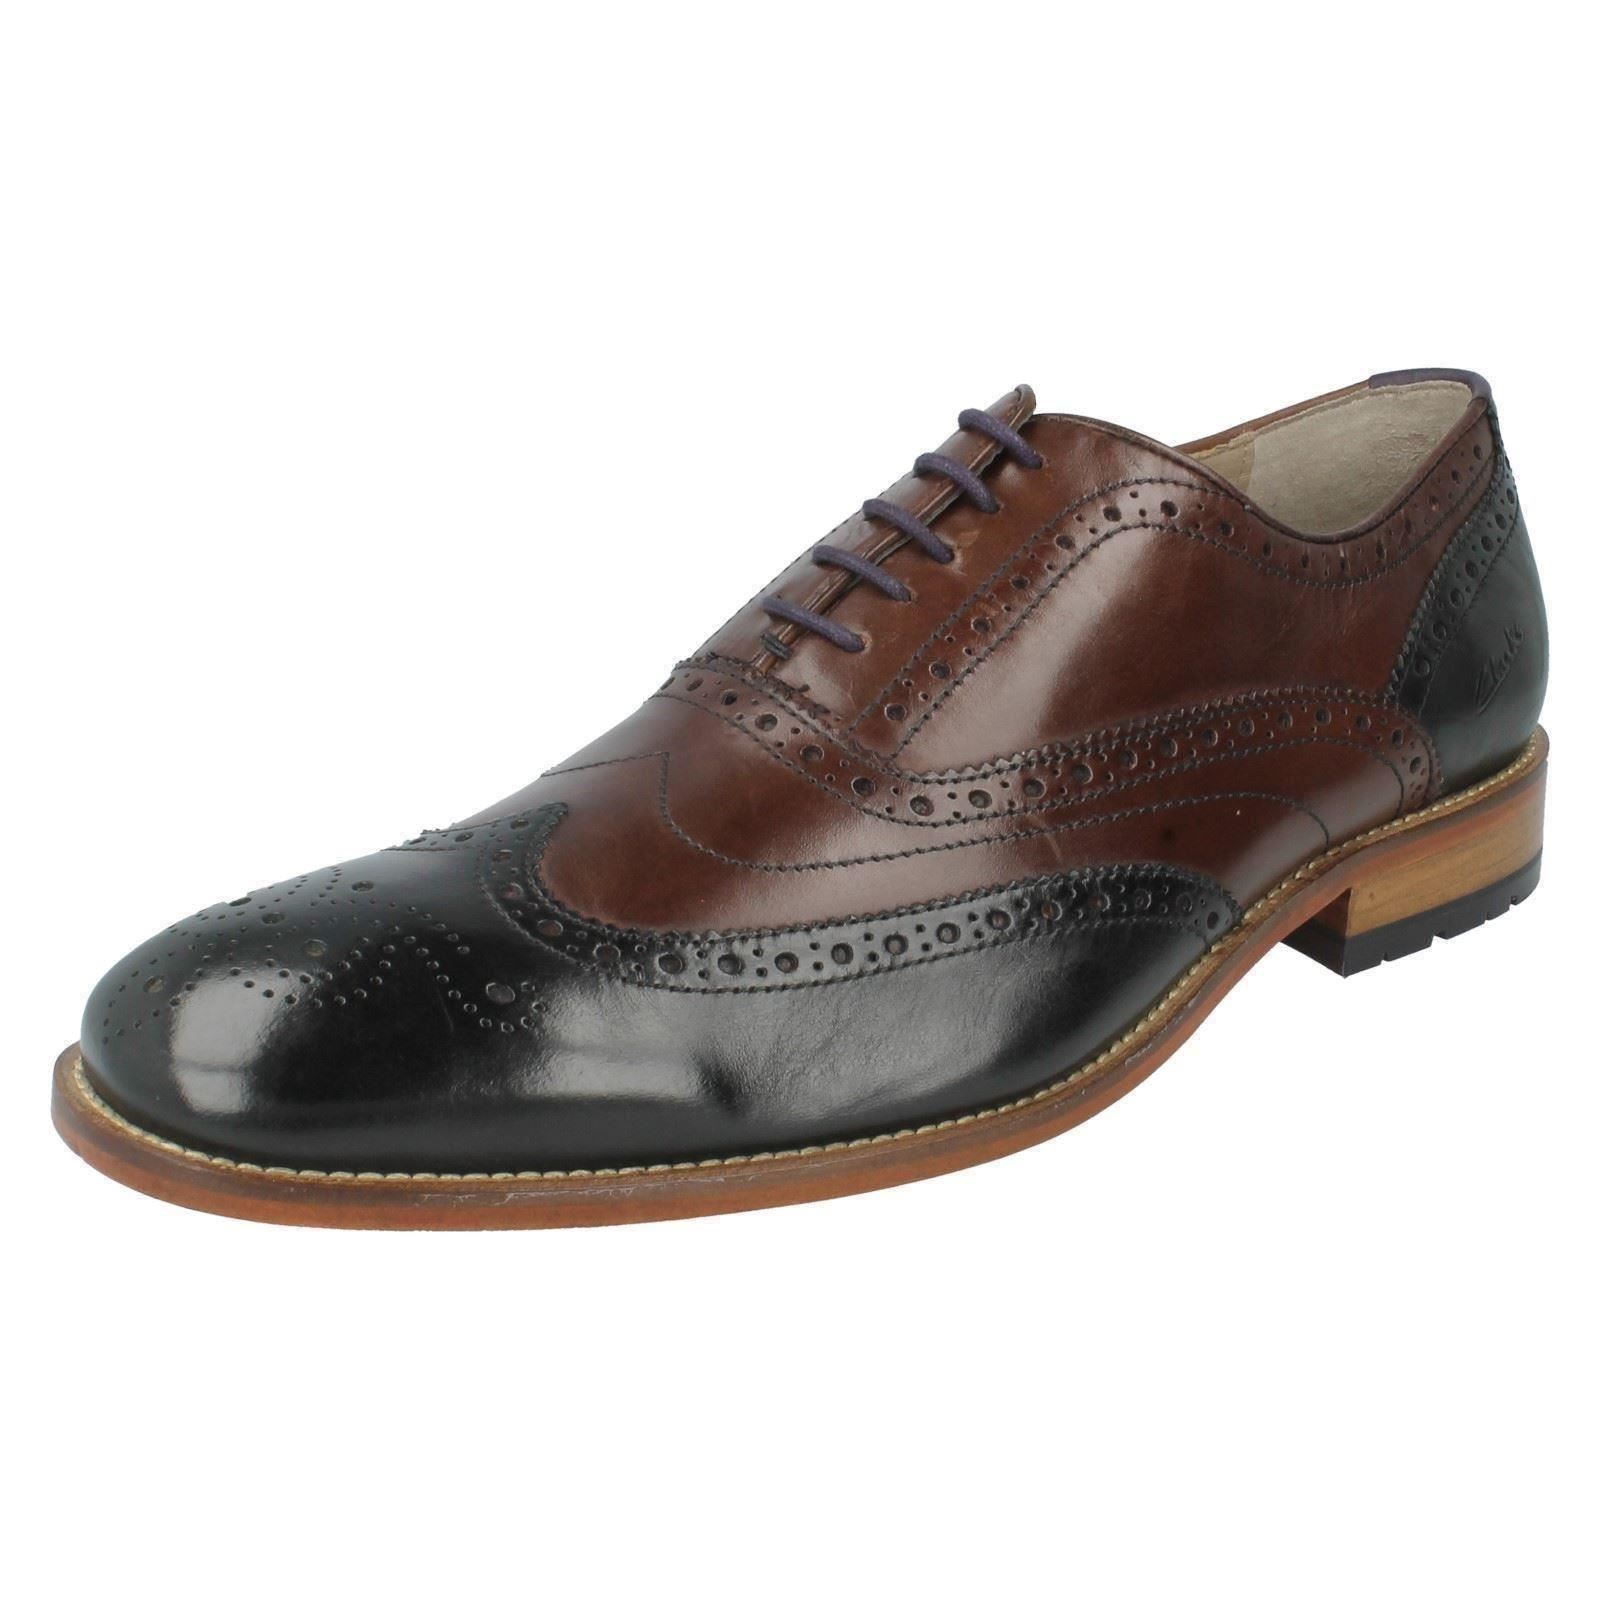 Men's Clarks Formal Brogues Shoes The Style -  Penton Linint